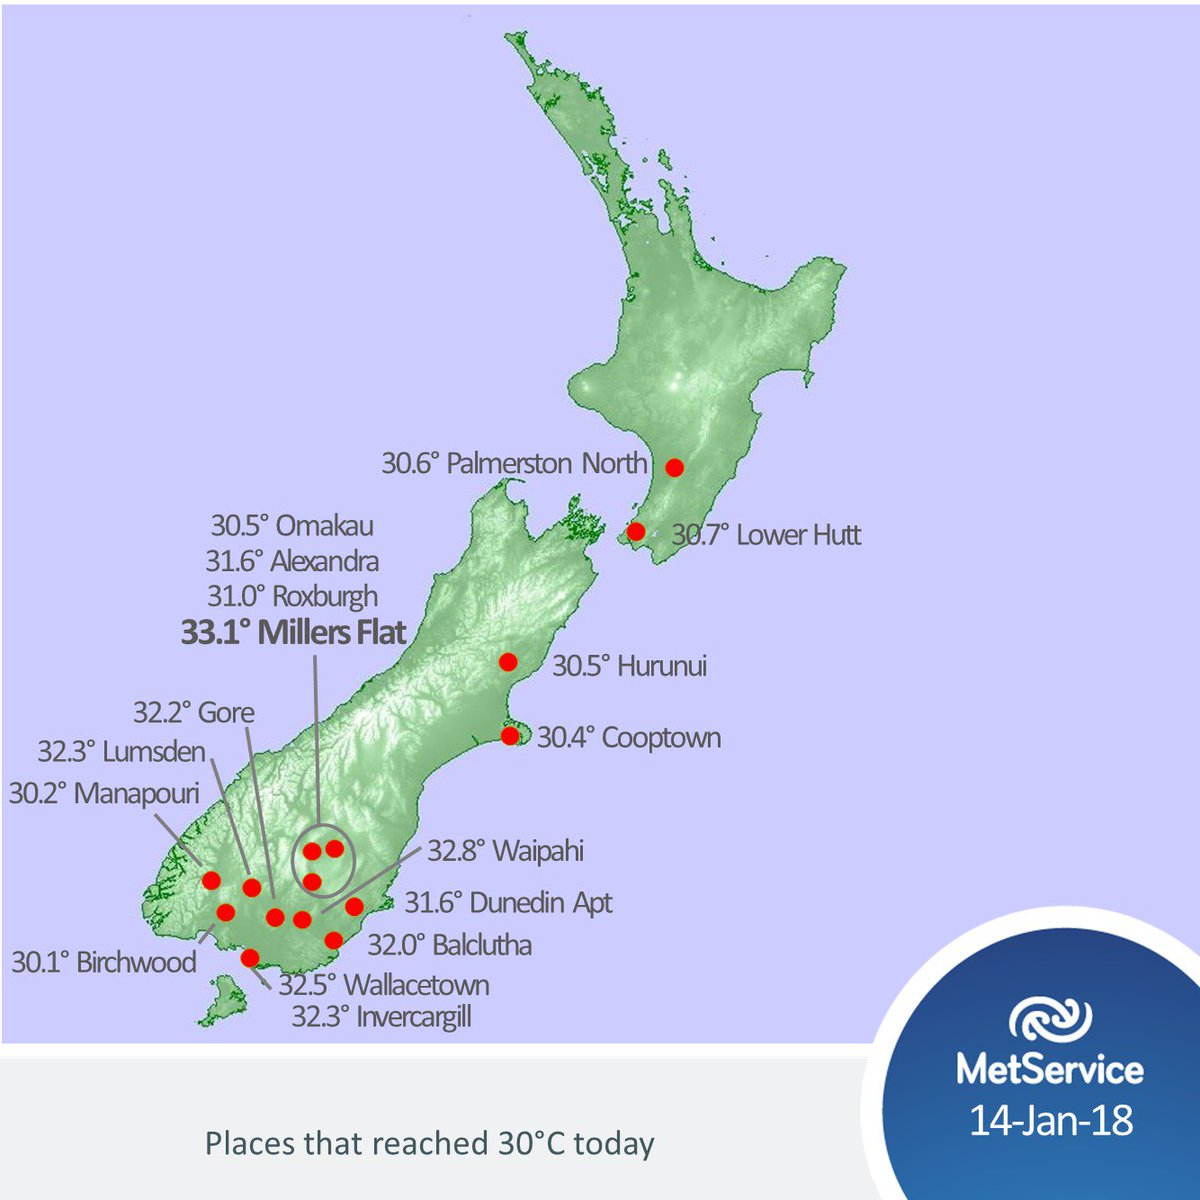 Metservice On Twitter There Were Likely Similar Or Warmer Temperatures Around Upper Hutt But We Do Not Have An Official Recording Station There Ag